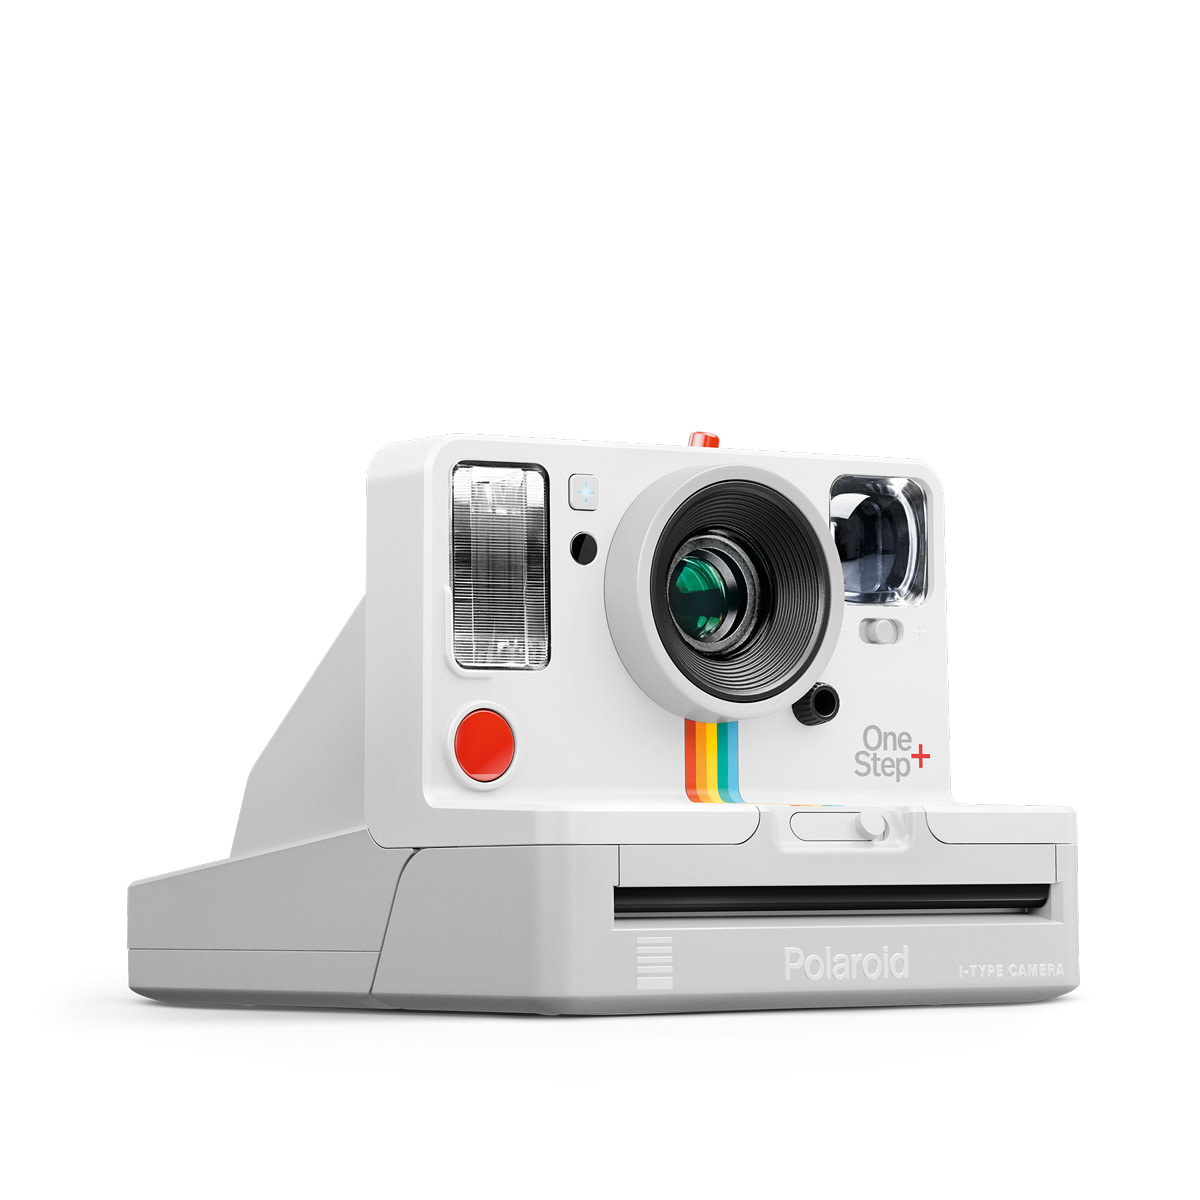 Best Camera for Instant Photography